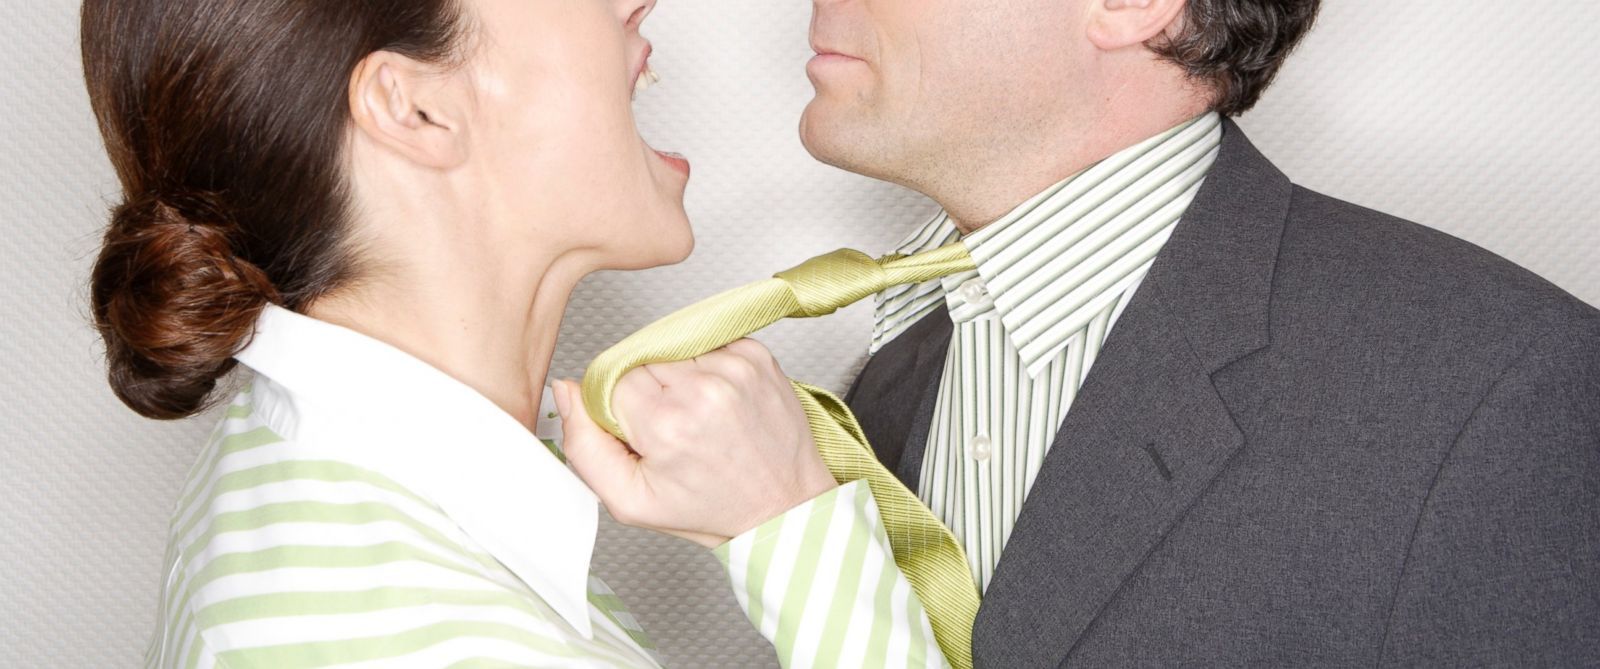 PHOTO: A man and woman are seen fighting in this undated stock photo.